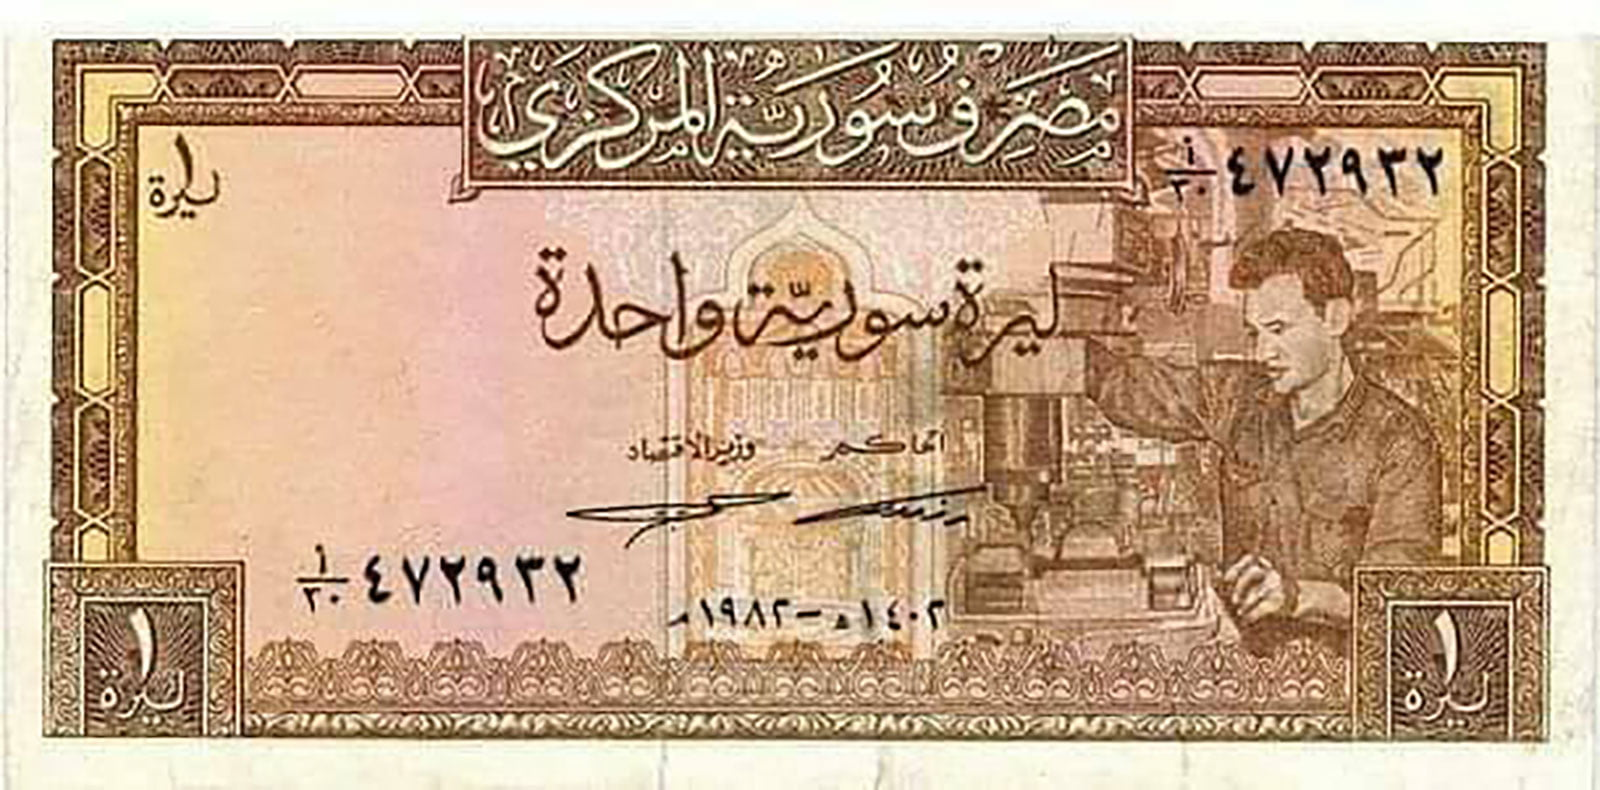 The Syrian lira